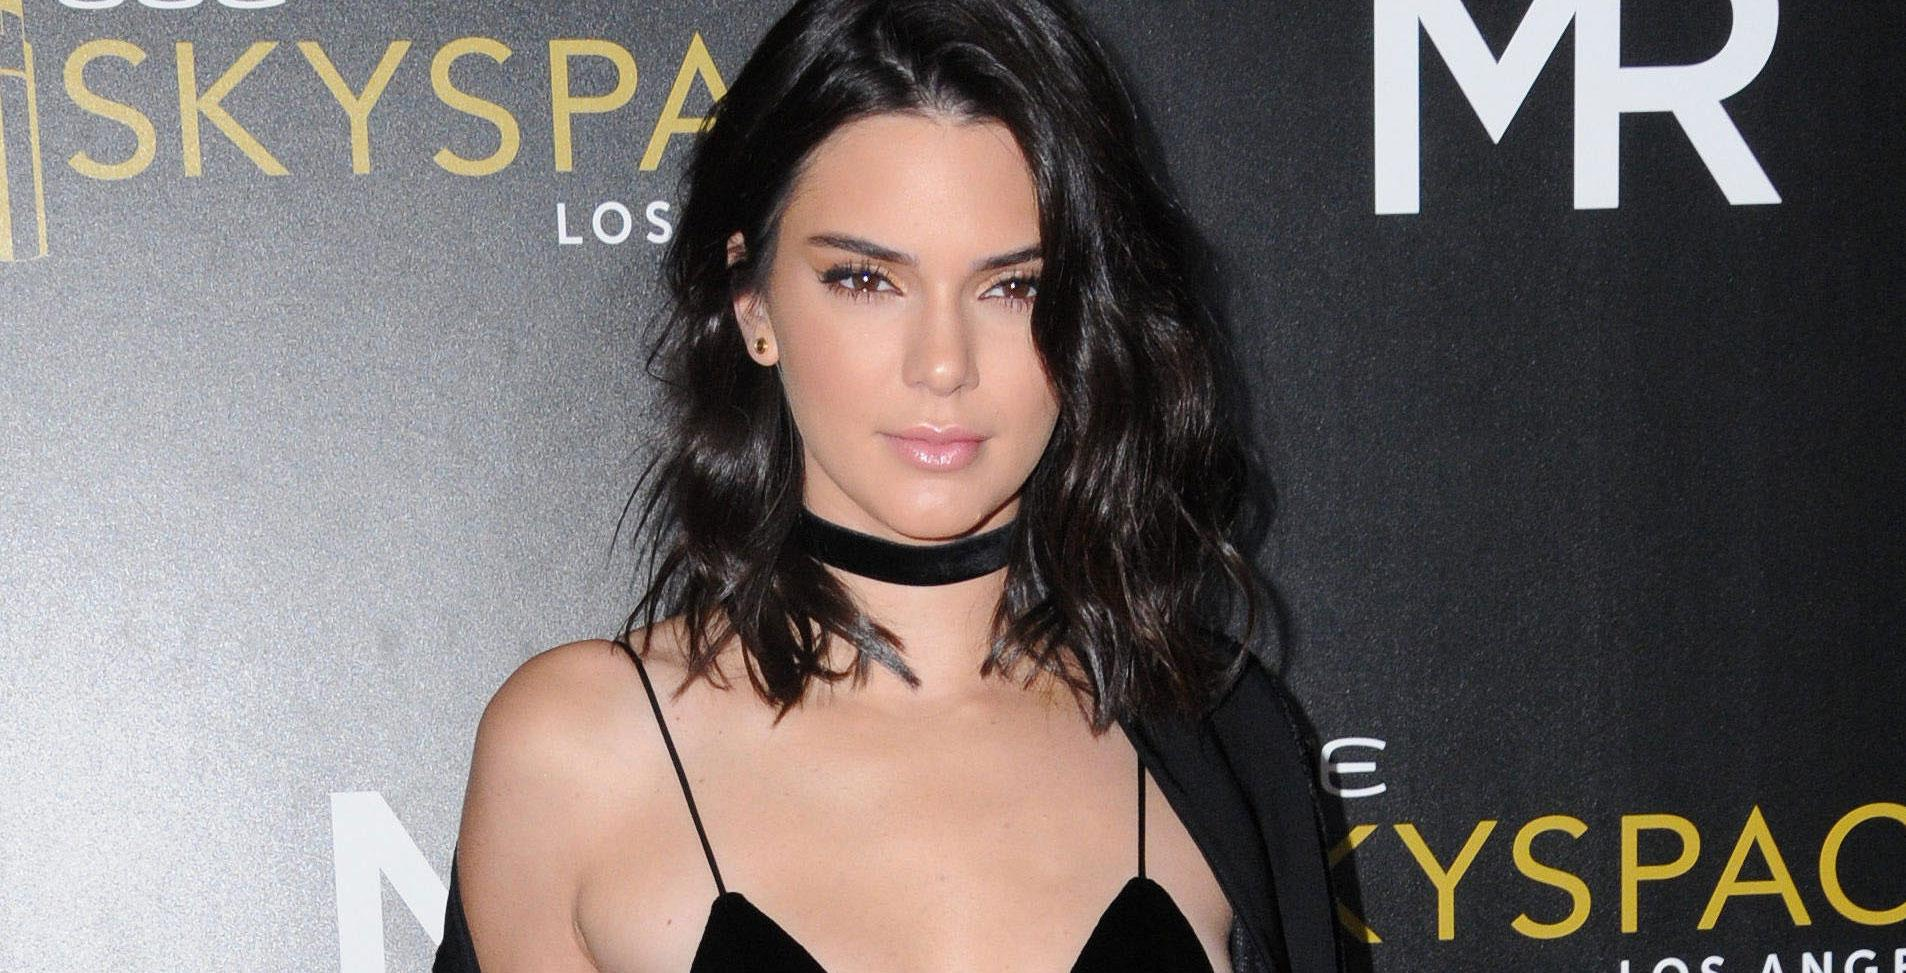 Kendall Jenners racy naked instagram post has gone viral